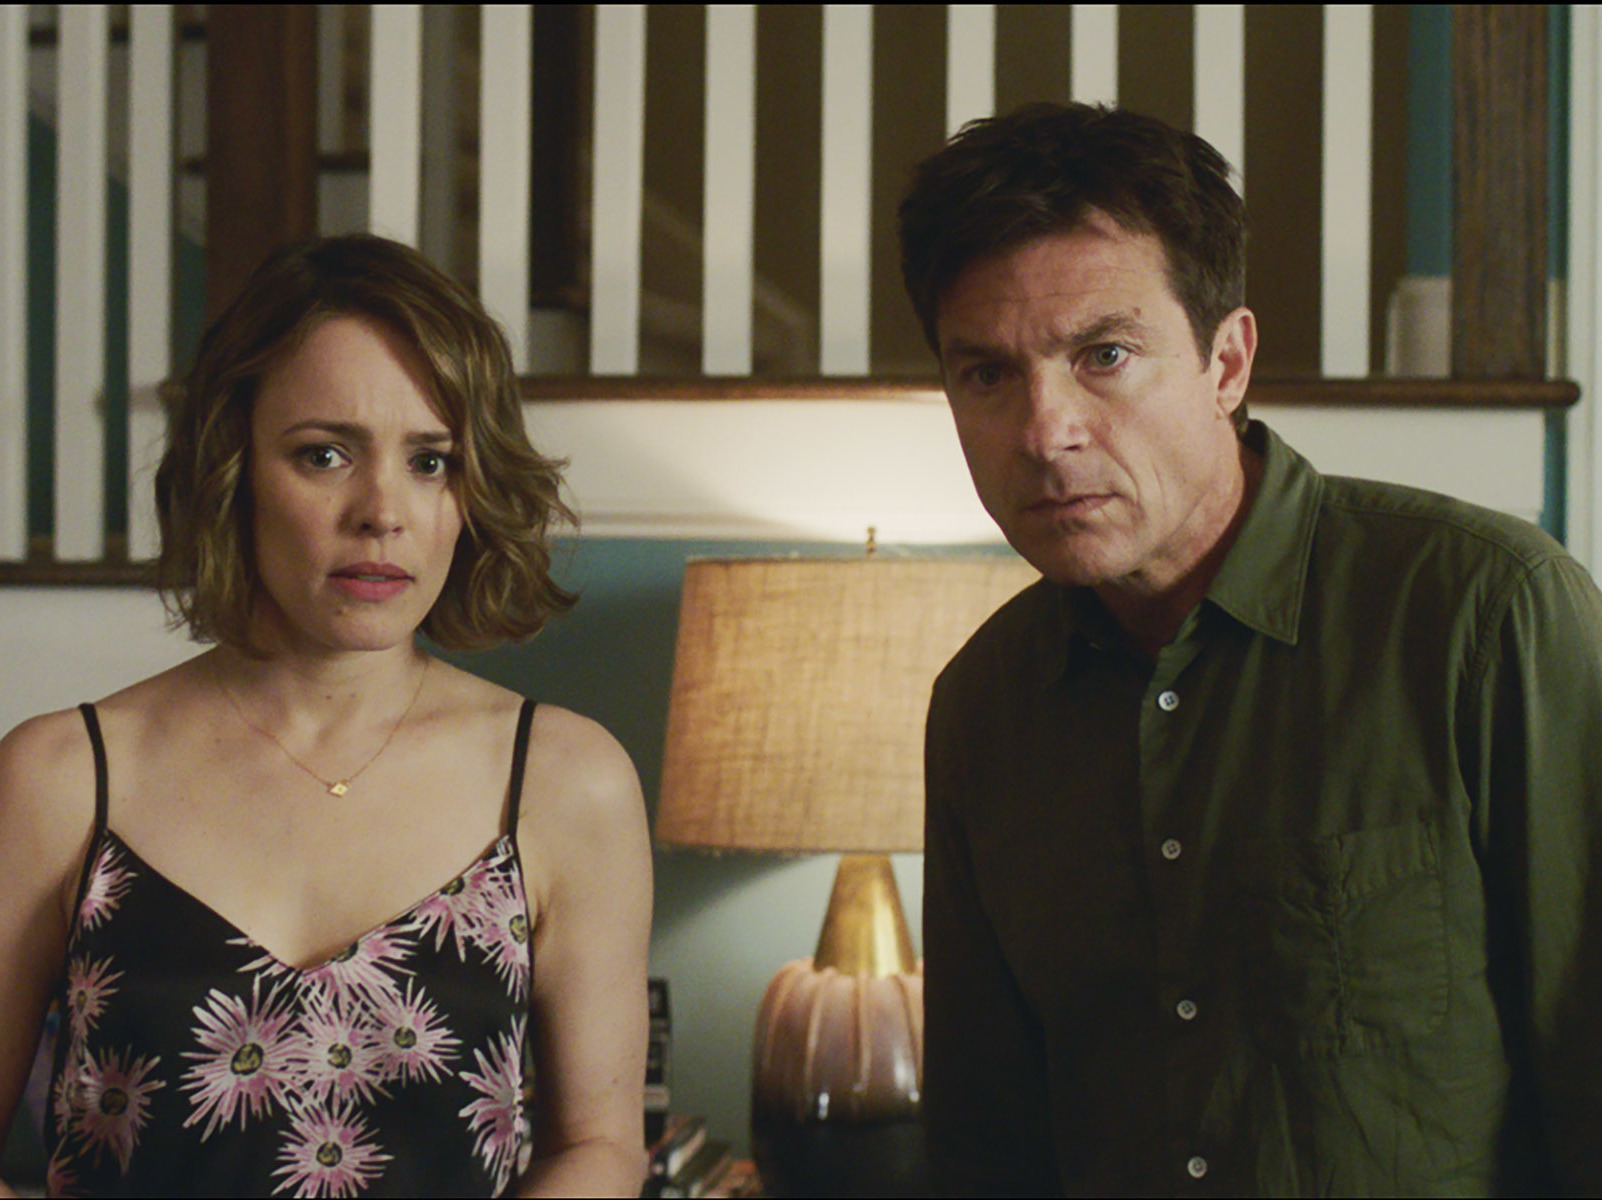 'Game Night' Has a Winning Rachel McAdams and Charades With a Twist